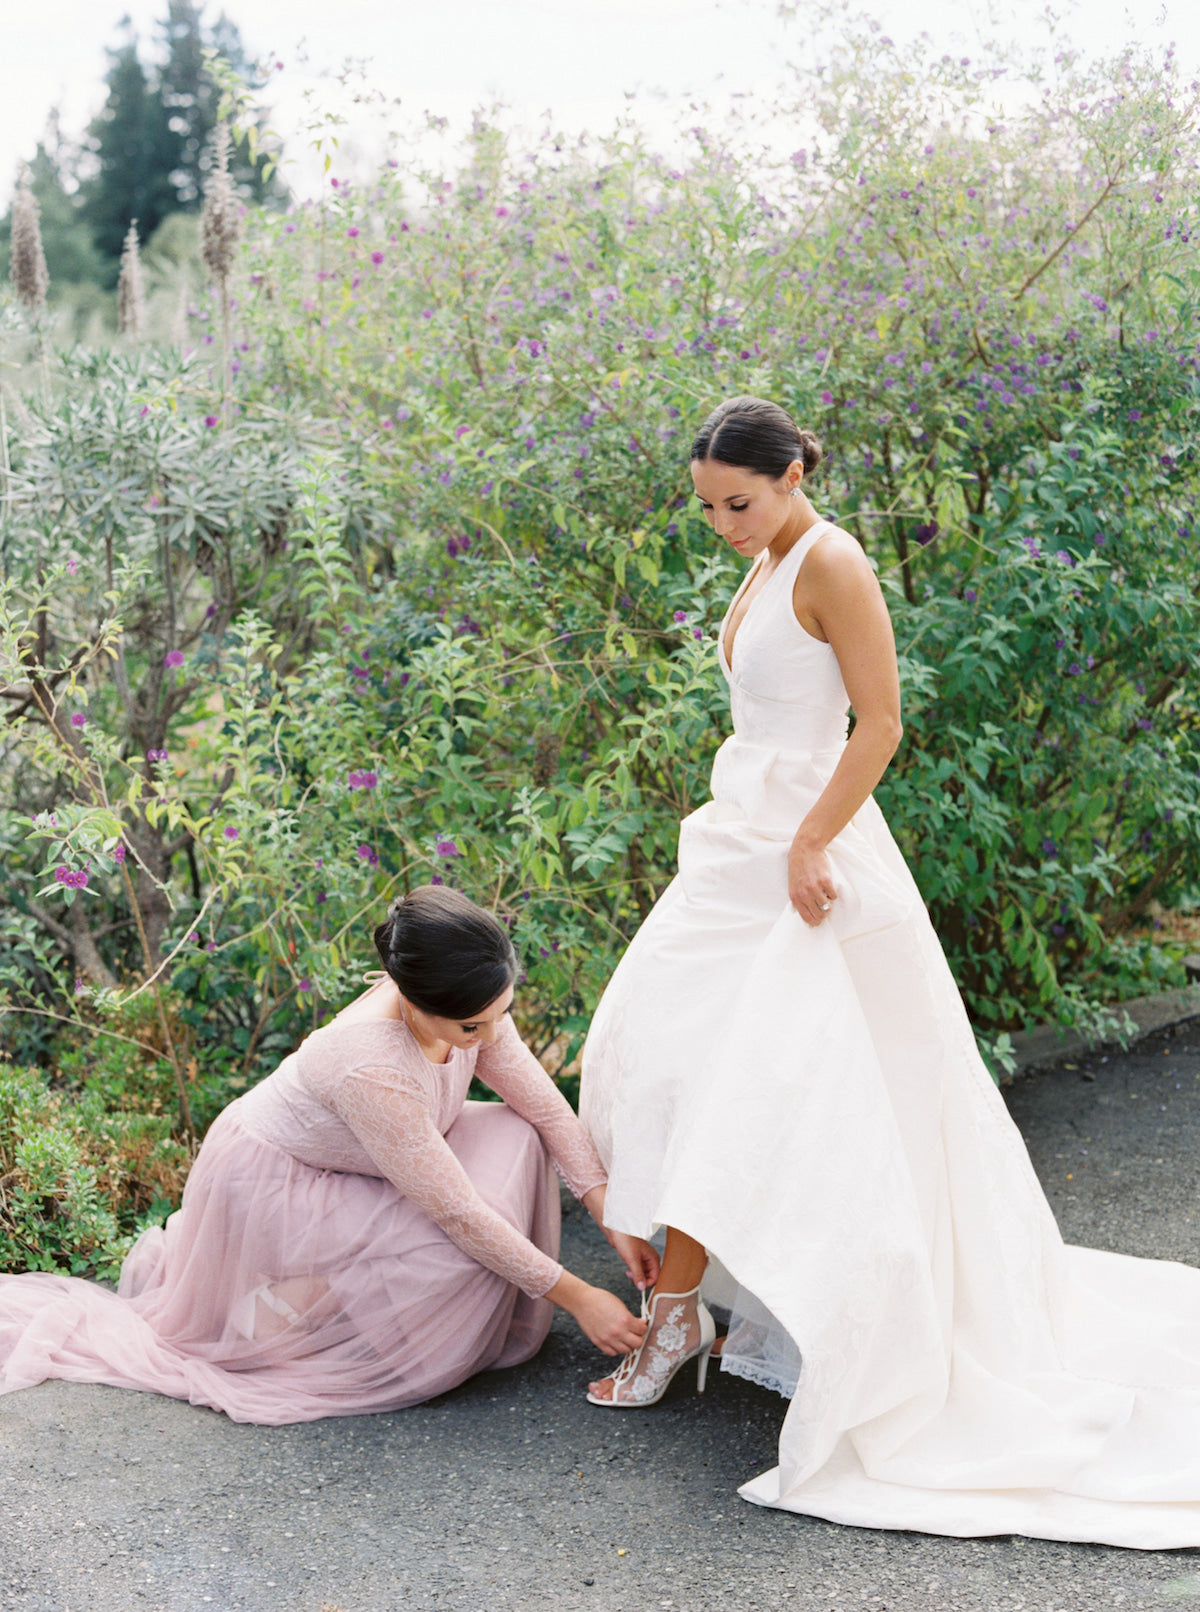 A bridesmaid helping a bride to put on her wedding shoe.